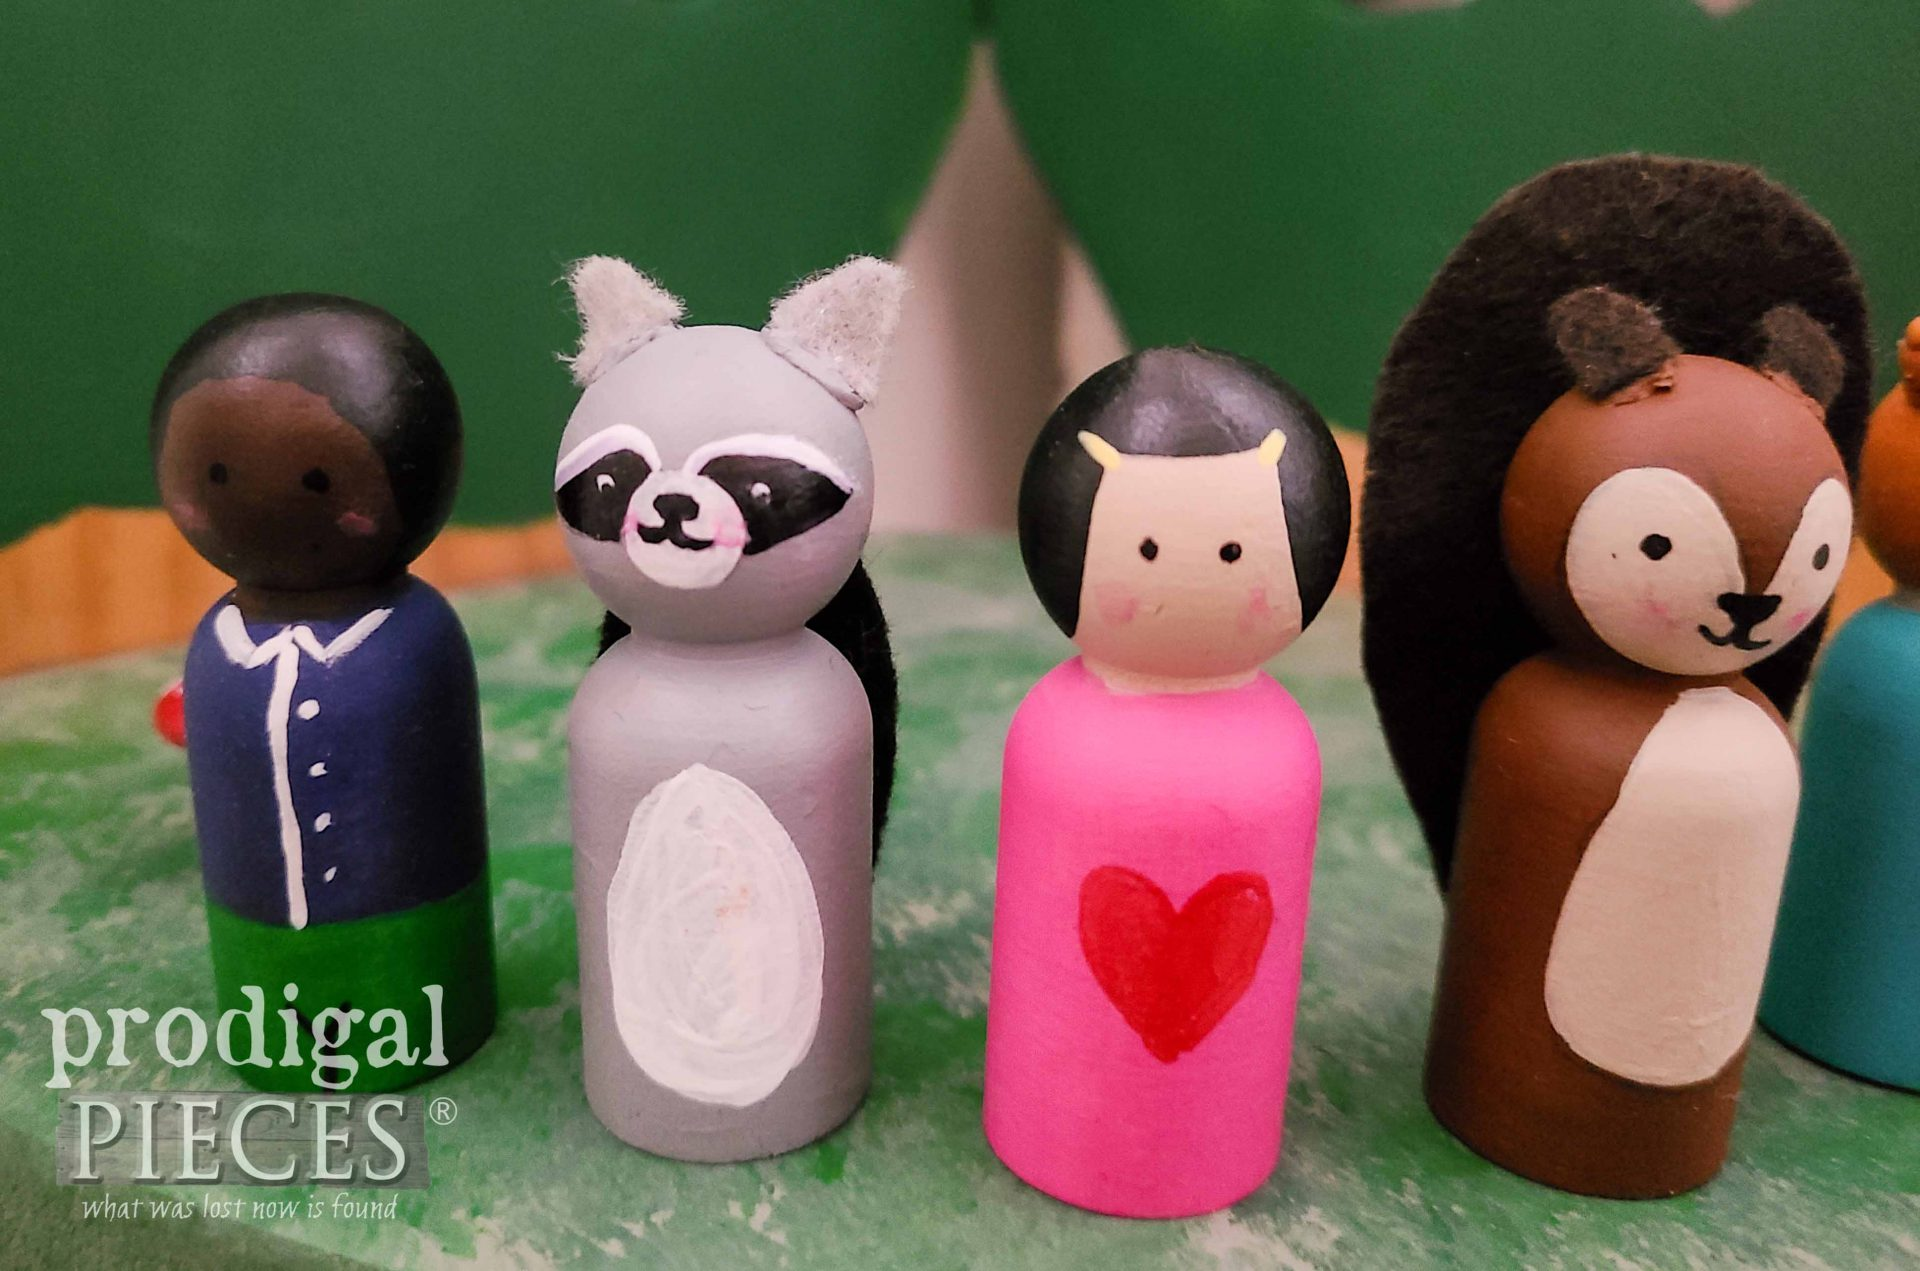 Adorable Painted Peg Dolls for Treehouse Playset from Upcycled Peg Dolls by Larissa of Prodigal Pieces | prodigalpieces.com #prodigalpieces #handmade #toys